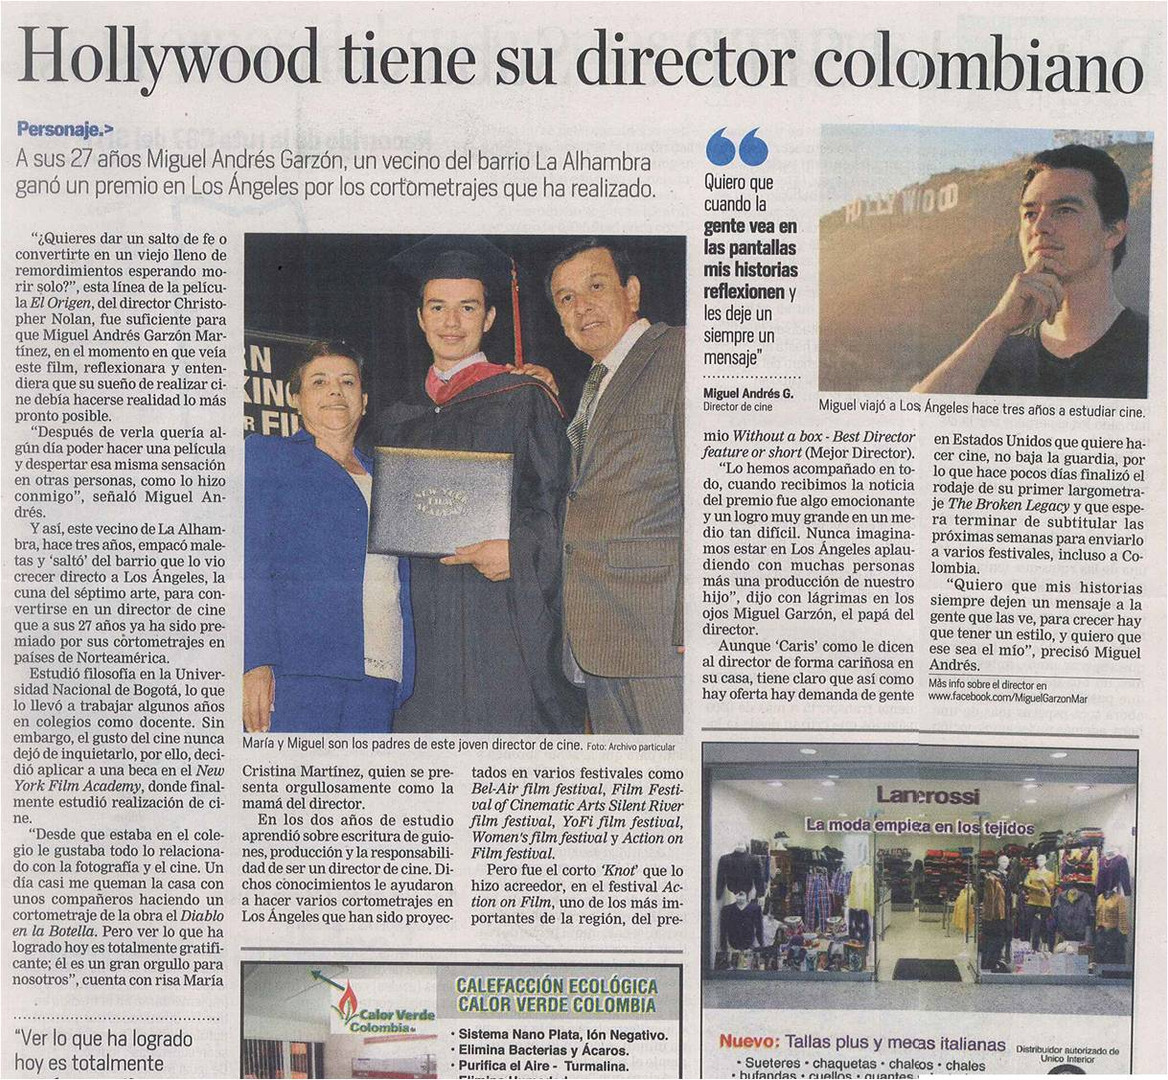 Interview with El Tiempo, Colombia's largest newspaper